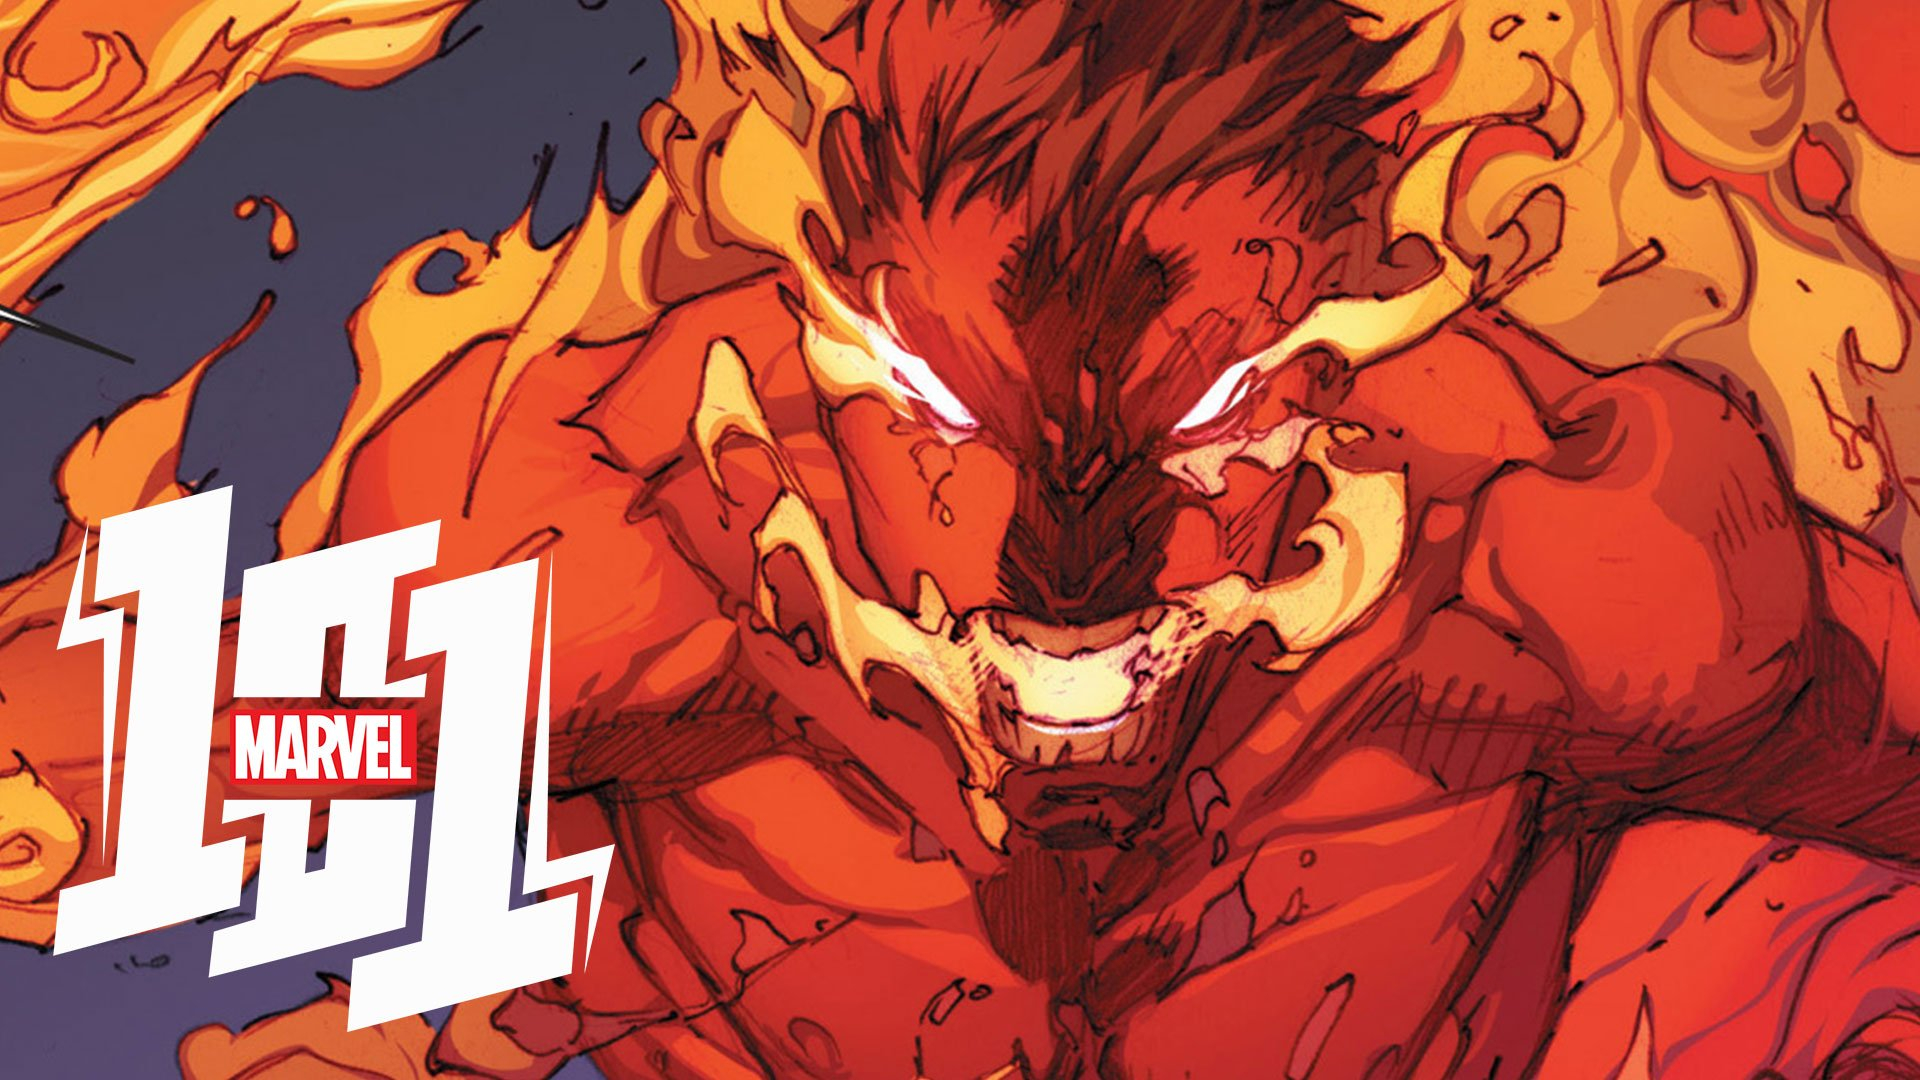 This week on #Marvel101, discover how Dante Pertuz transformed into Inferno and became a fiery fighting force! #ad https://t.co/E0lj9PCi5N